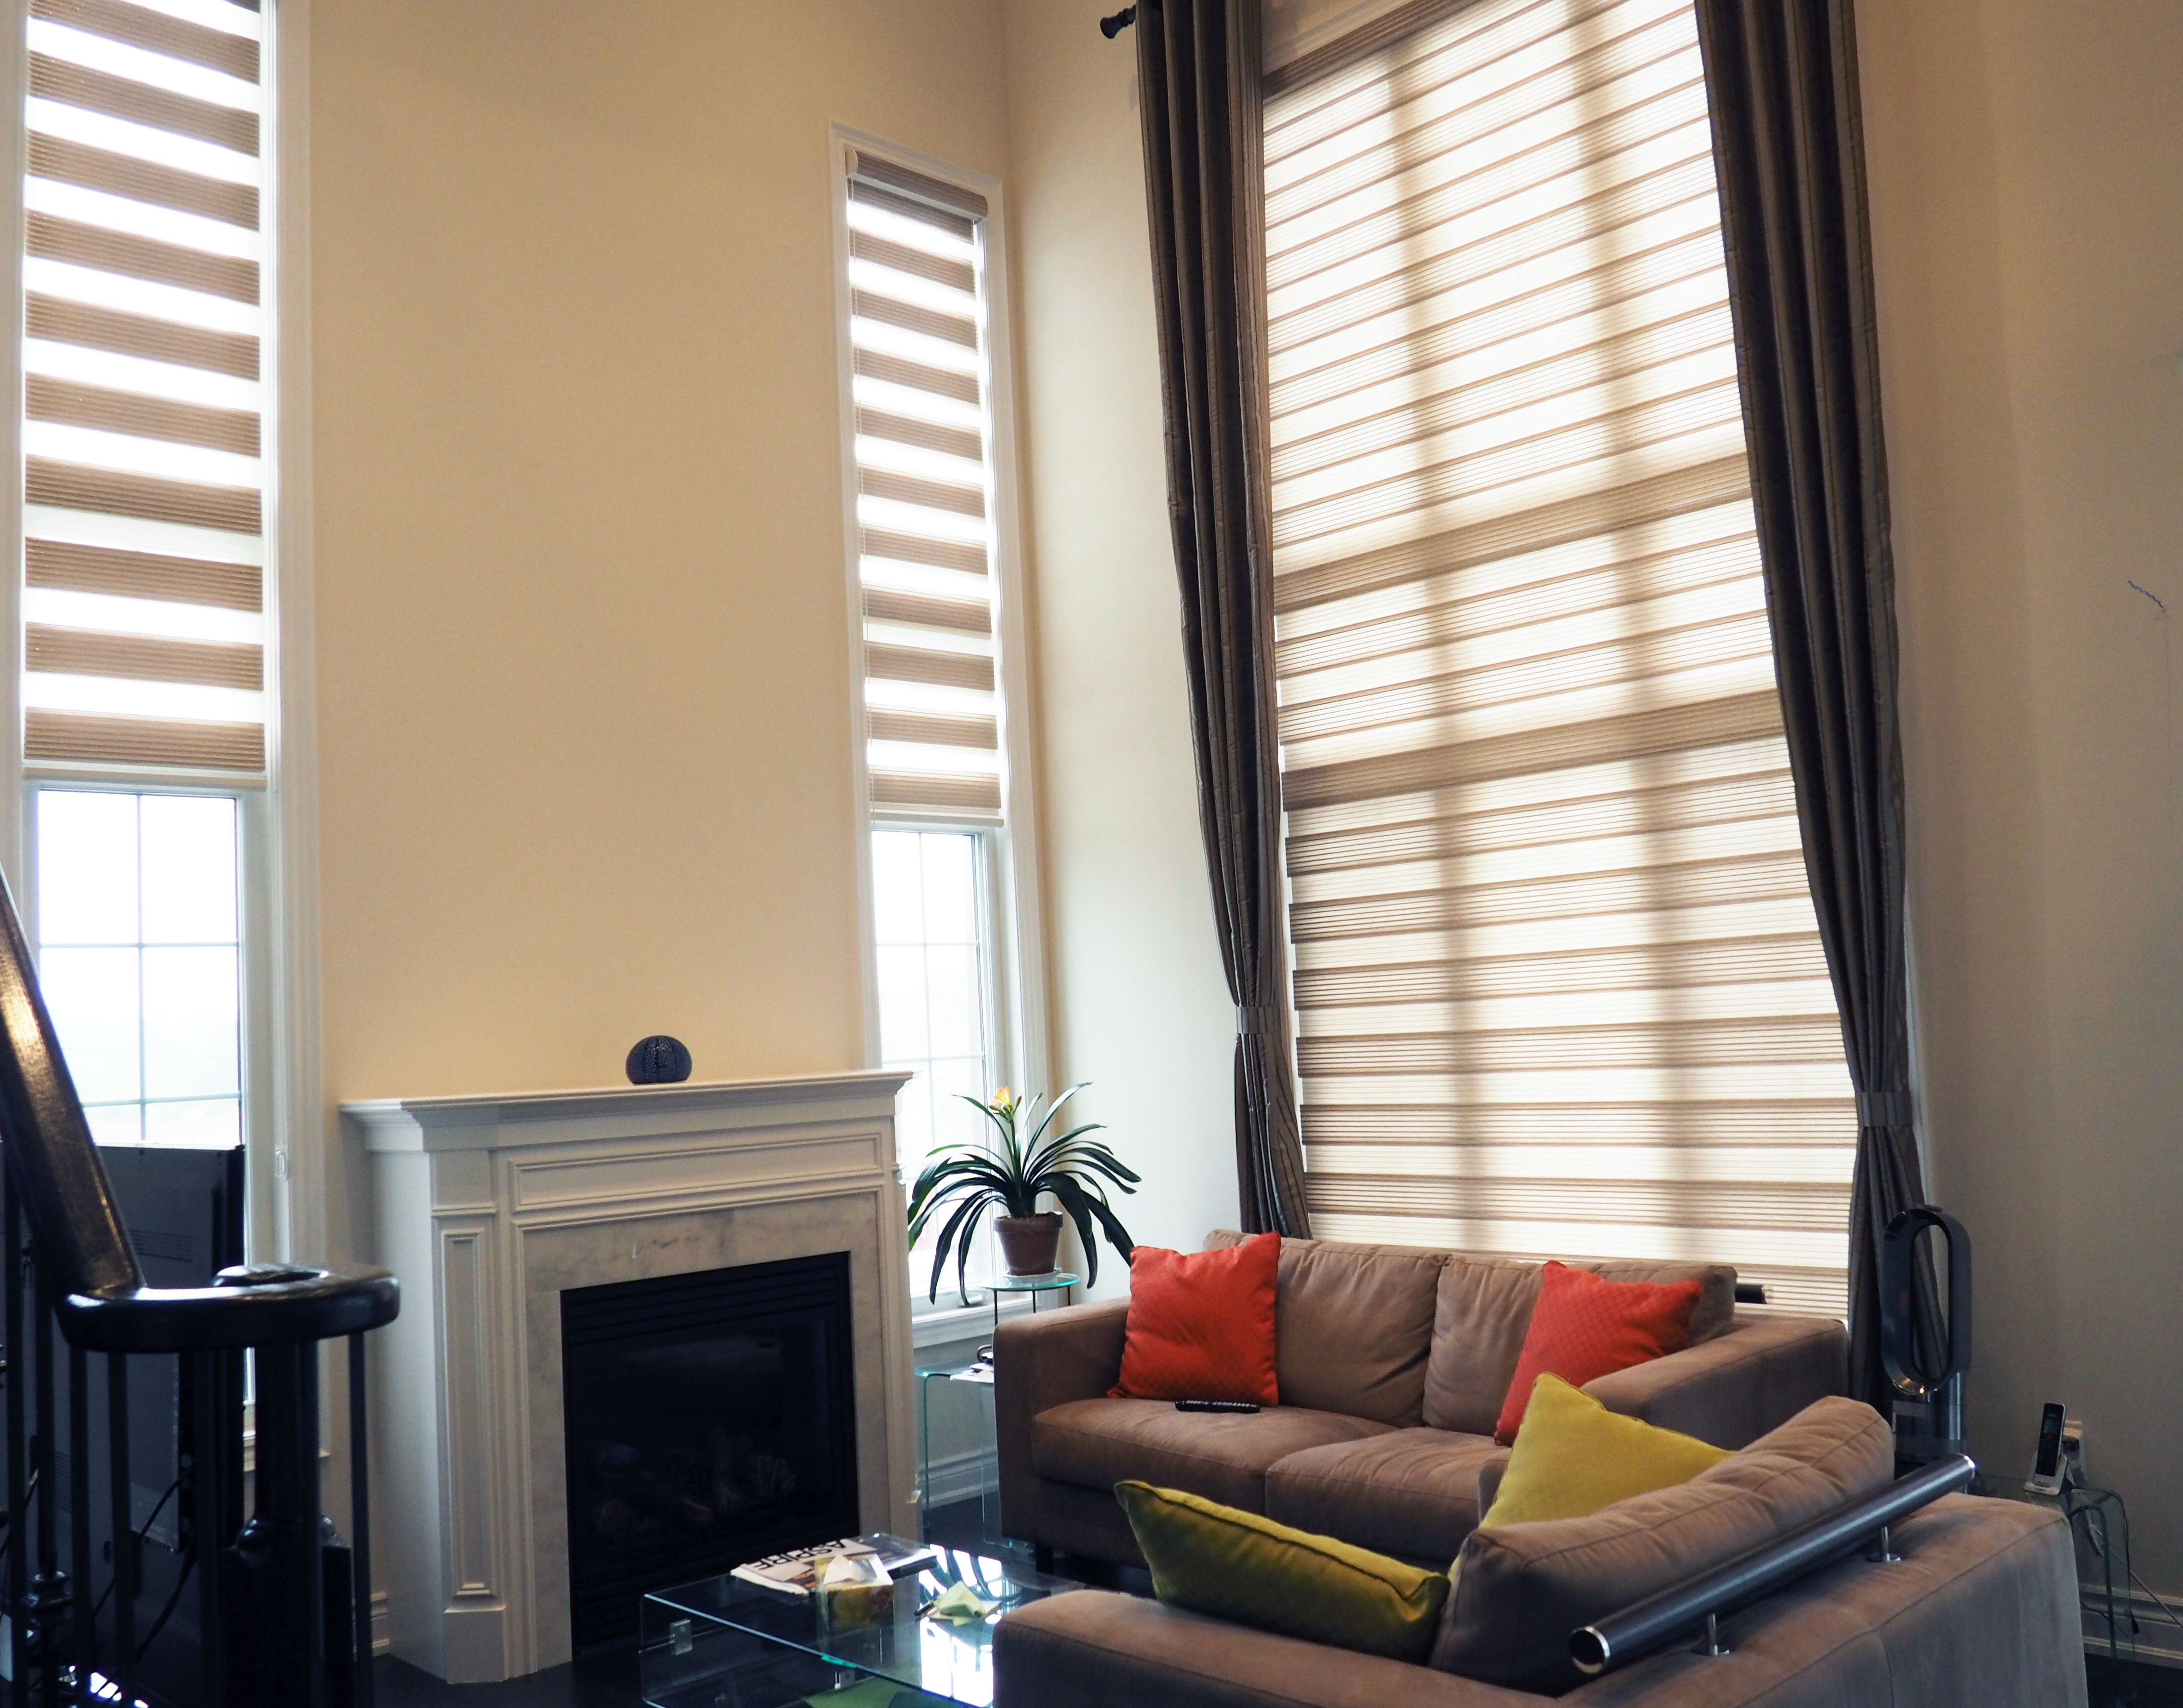 go covering to g specialist window blinds van related your windo locations nationwide mini paramus